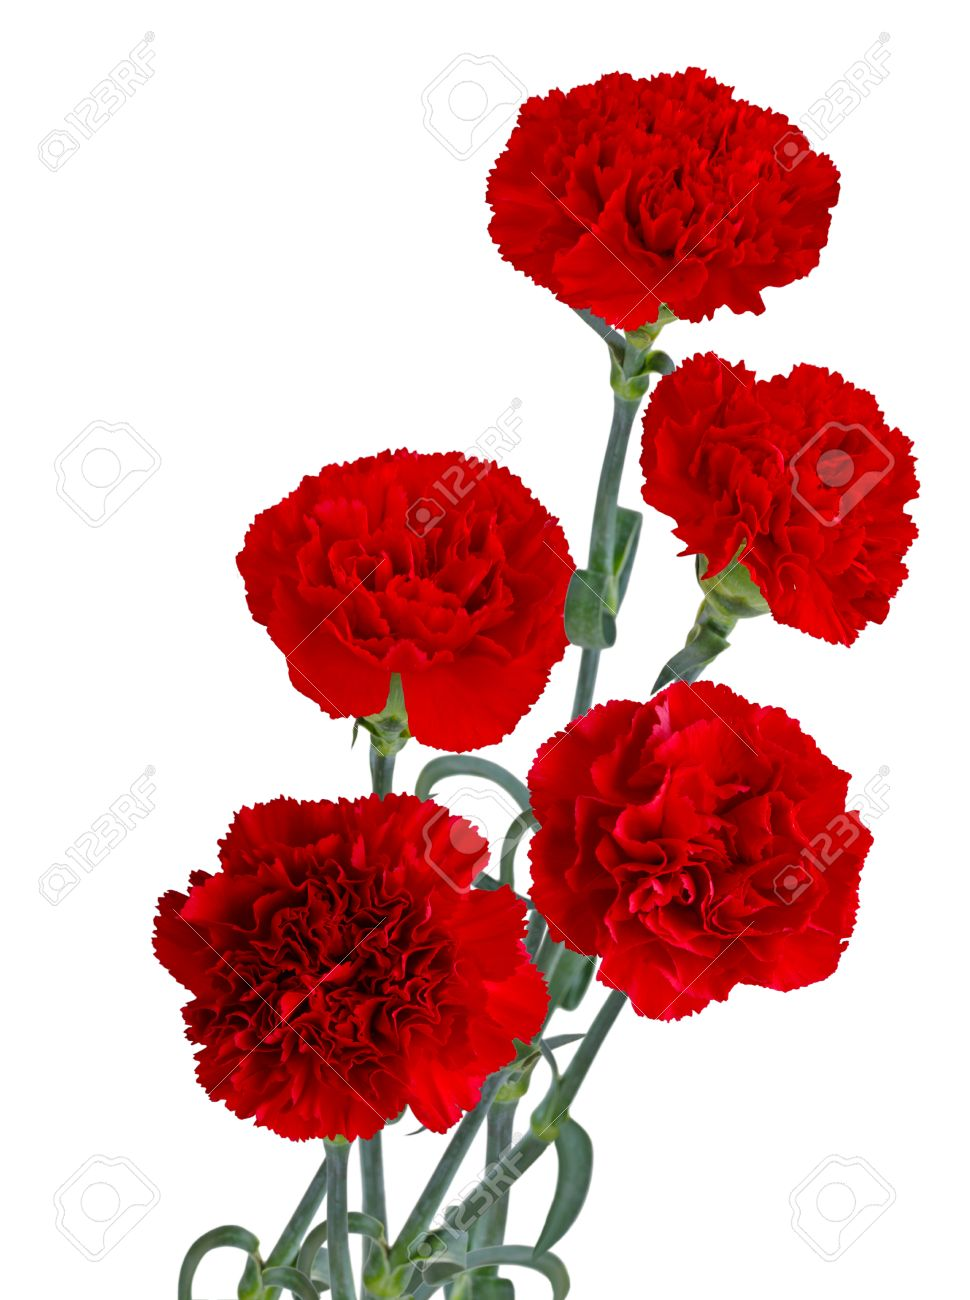 Red Carnation Flower Bouquet Isolated On White Background Stock